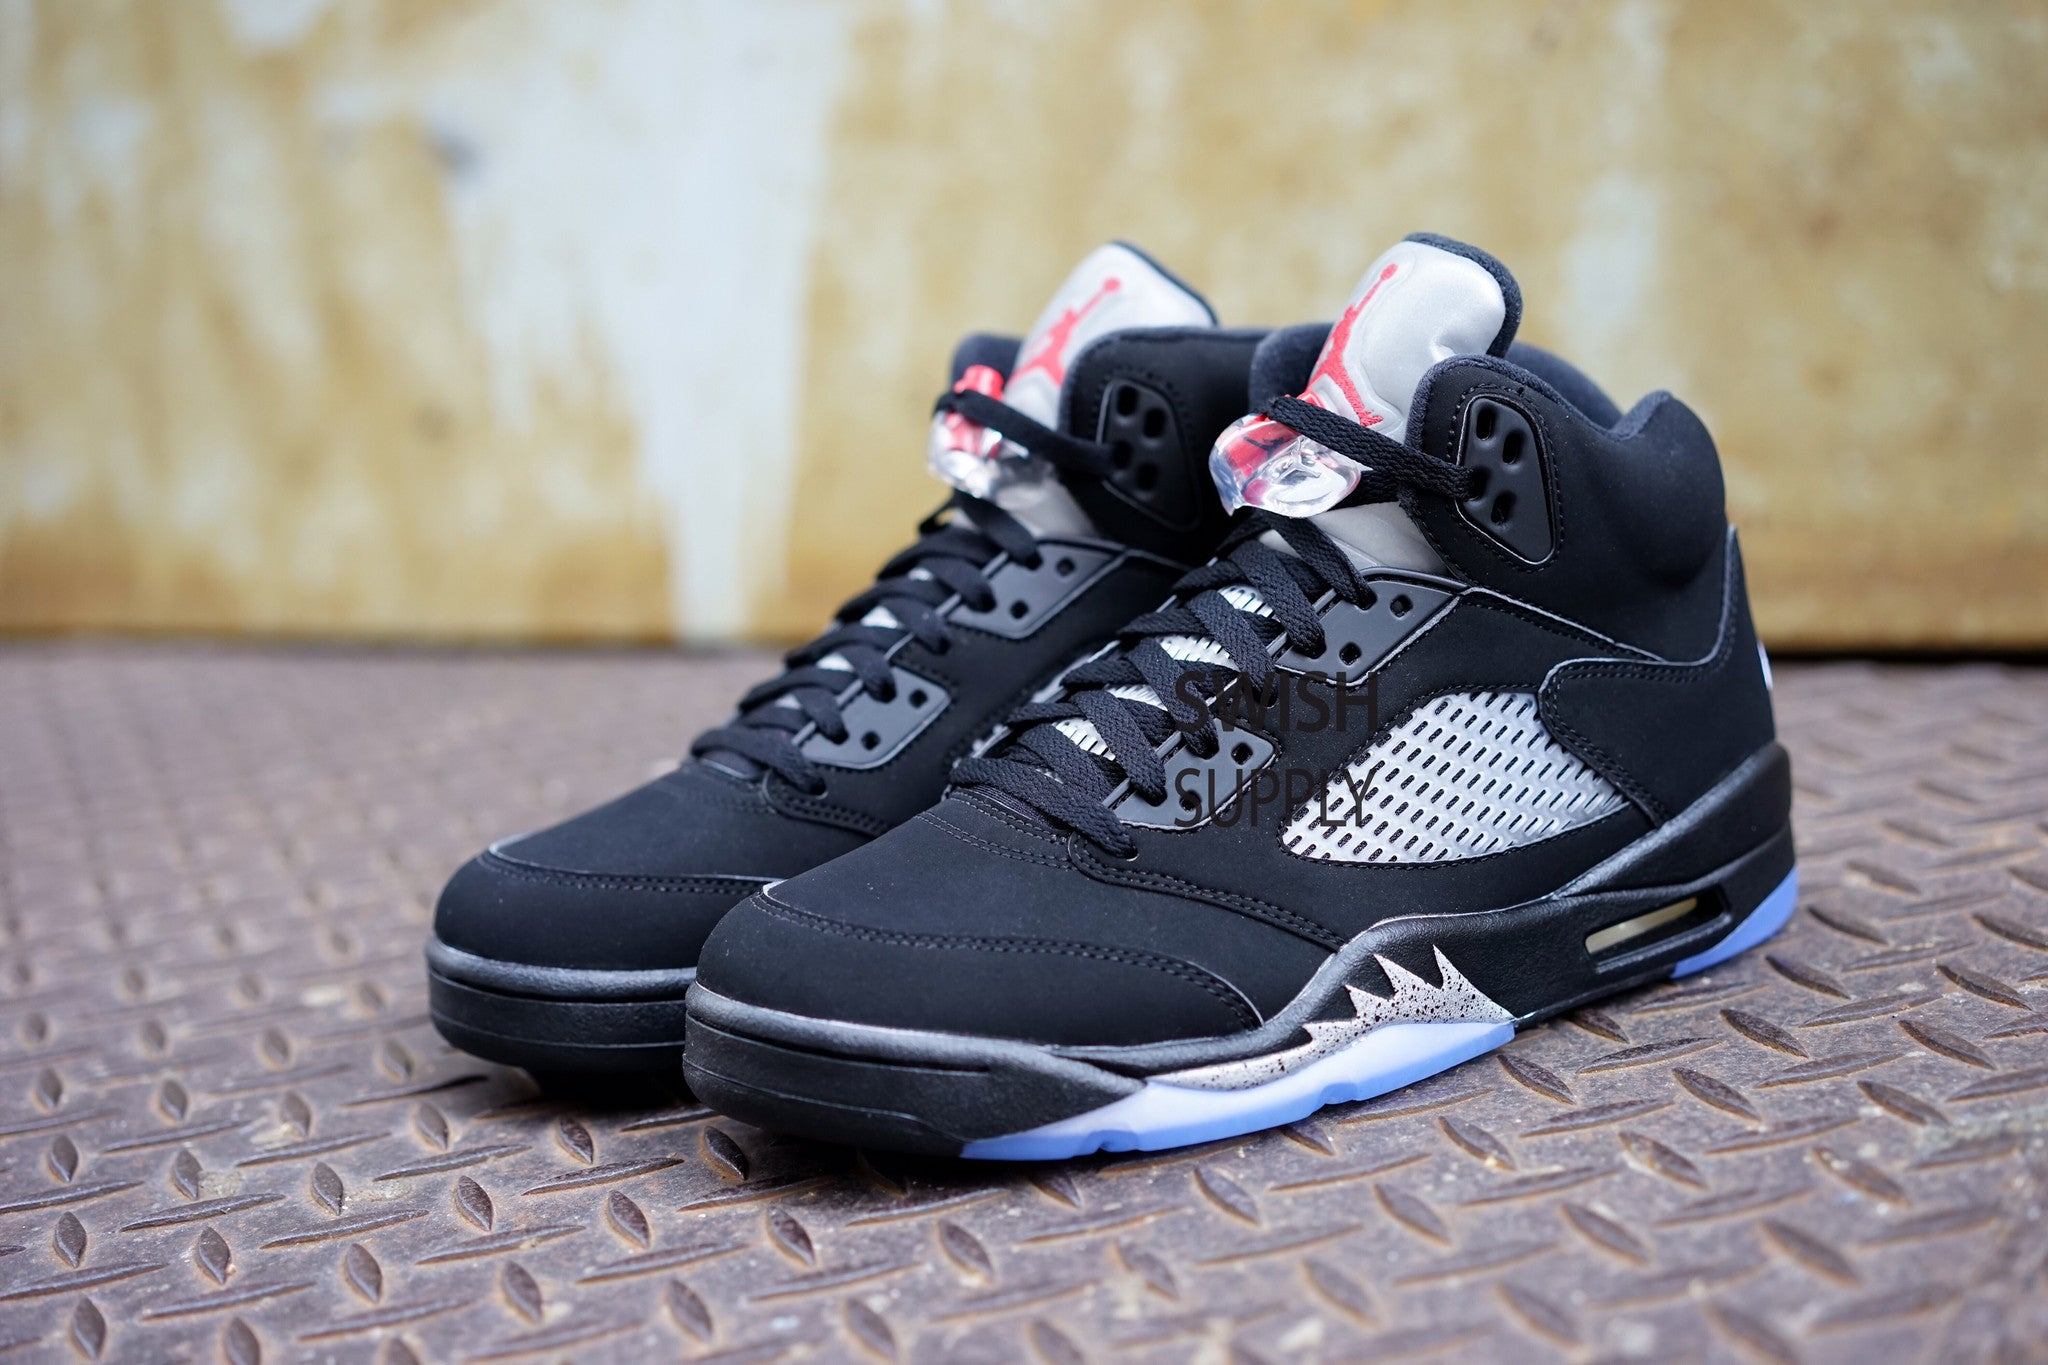 hot sale online 600ae 8f7c4 Air Jordan 5 Black Metallic Silver OG Retro